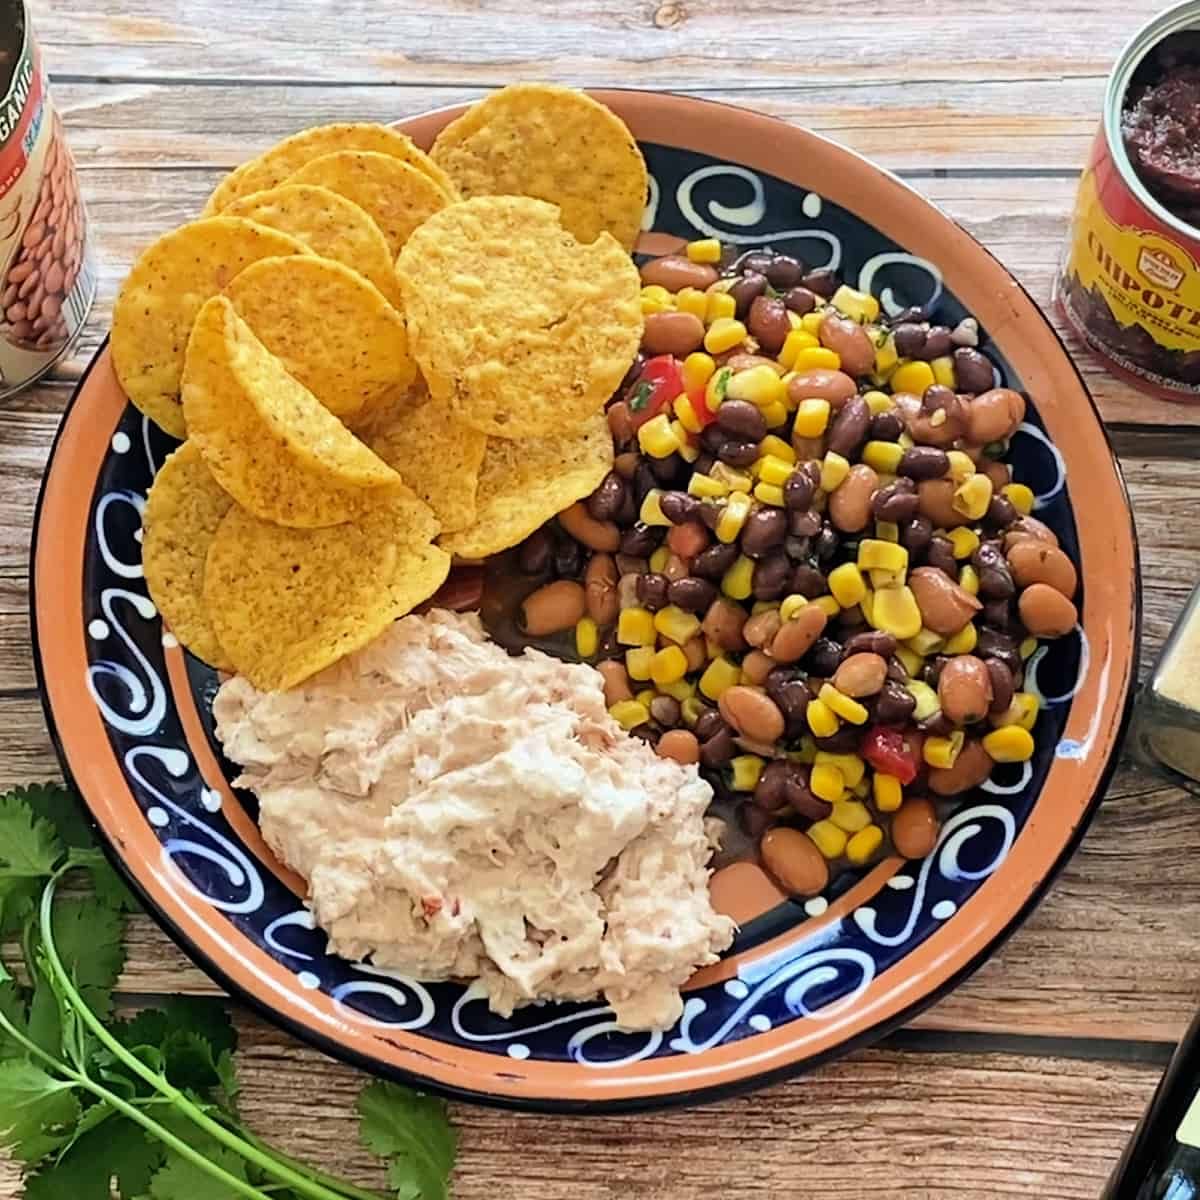 A plate with bean salad and creamy chipotle tuna salad.